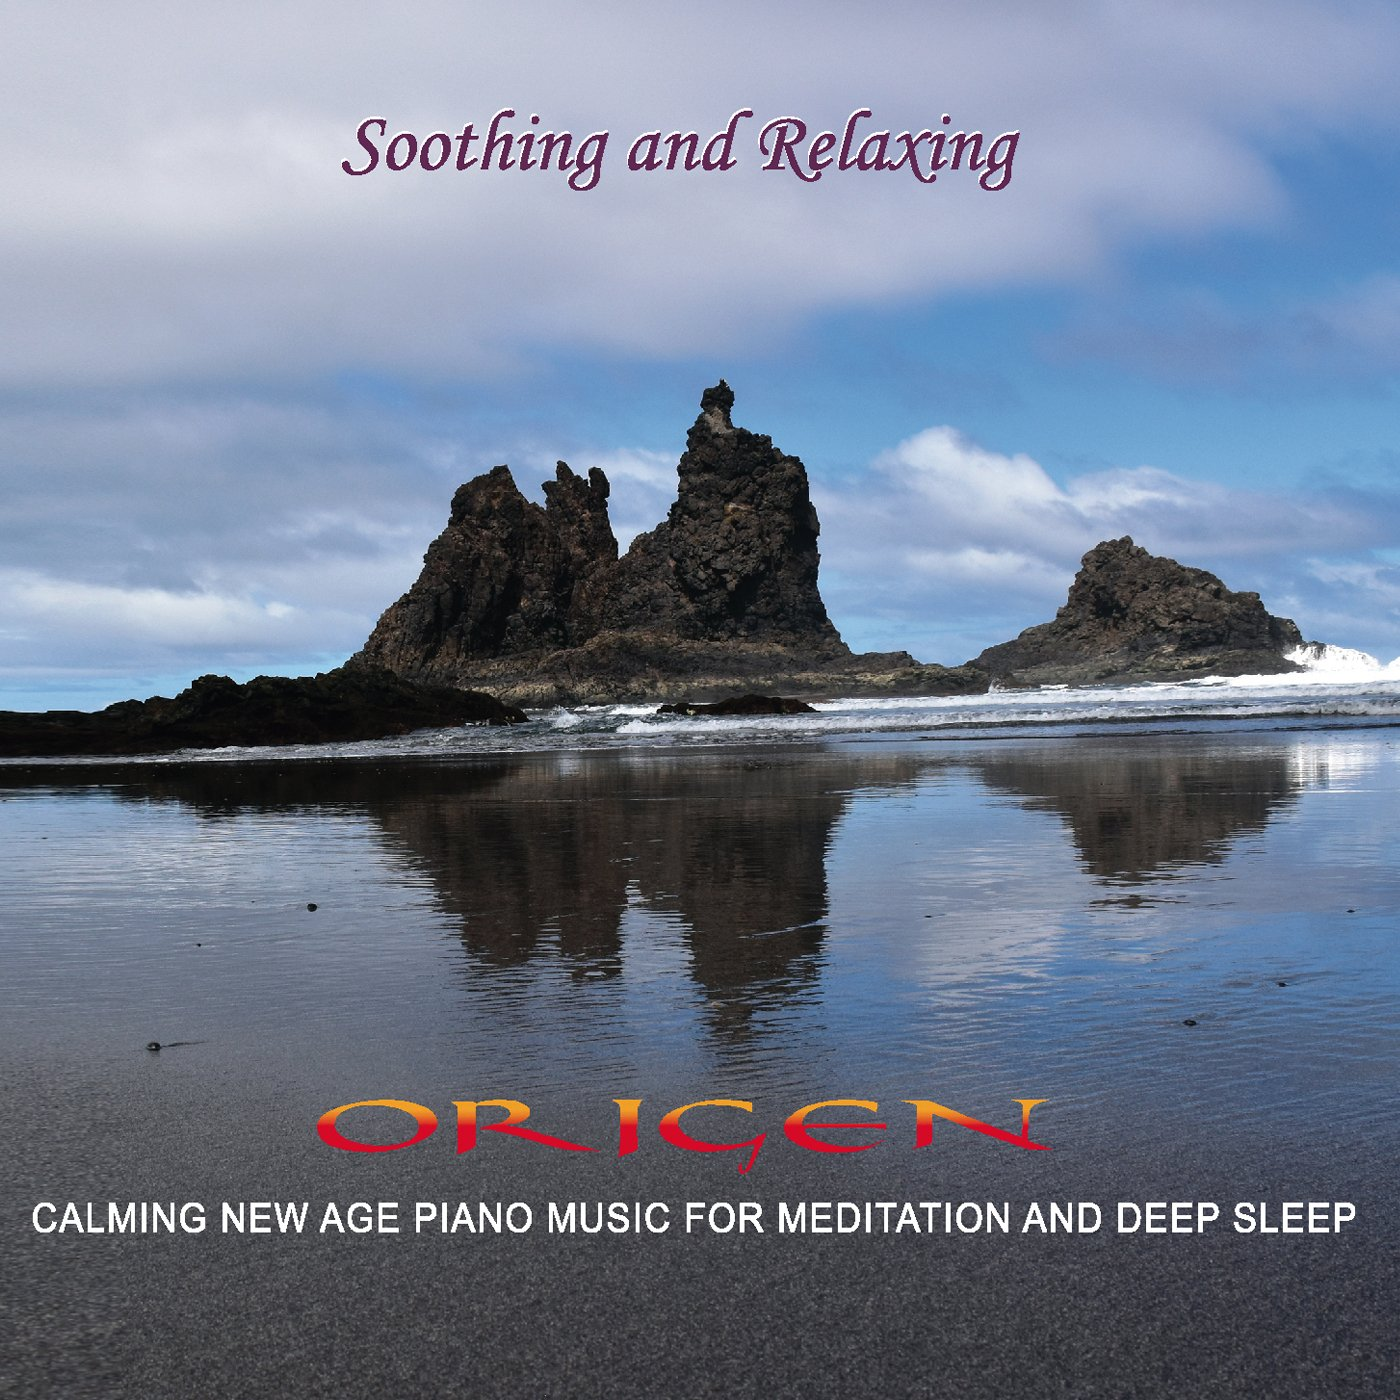 Soothing and Relaxing. Calming New Age Piano Music For Meditation, Relaxation, Stress Relief and Deep Sleep / New Age and Classical Crossover Instrumental / Digipack- Release 2018